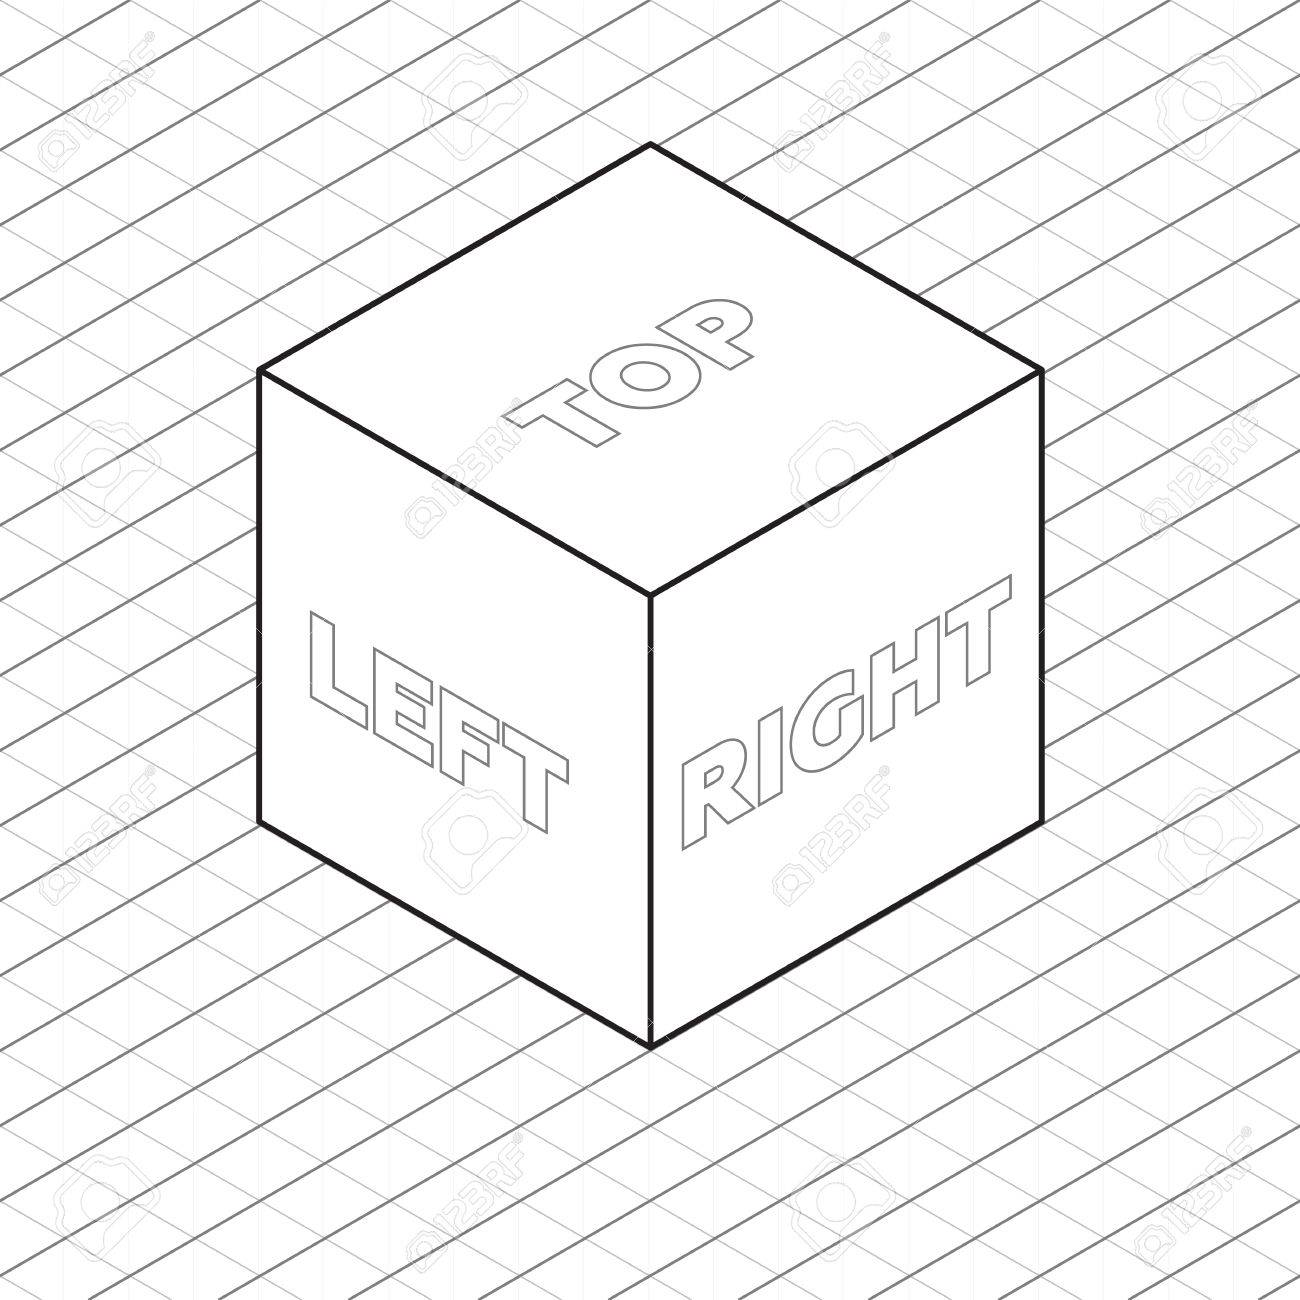 Isometric Cube Drawing At Getdrawings